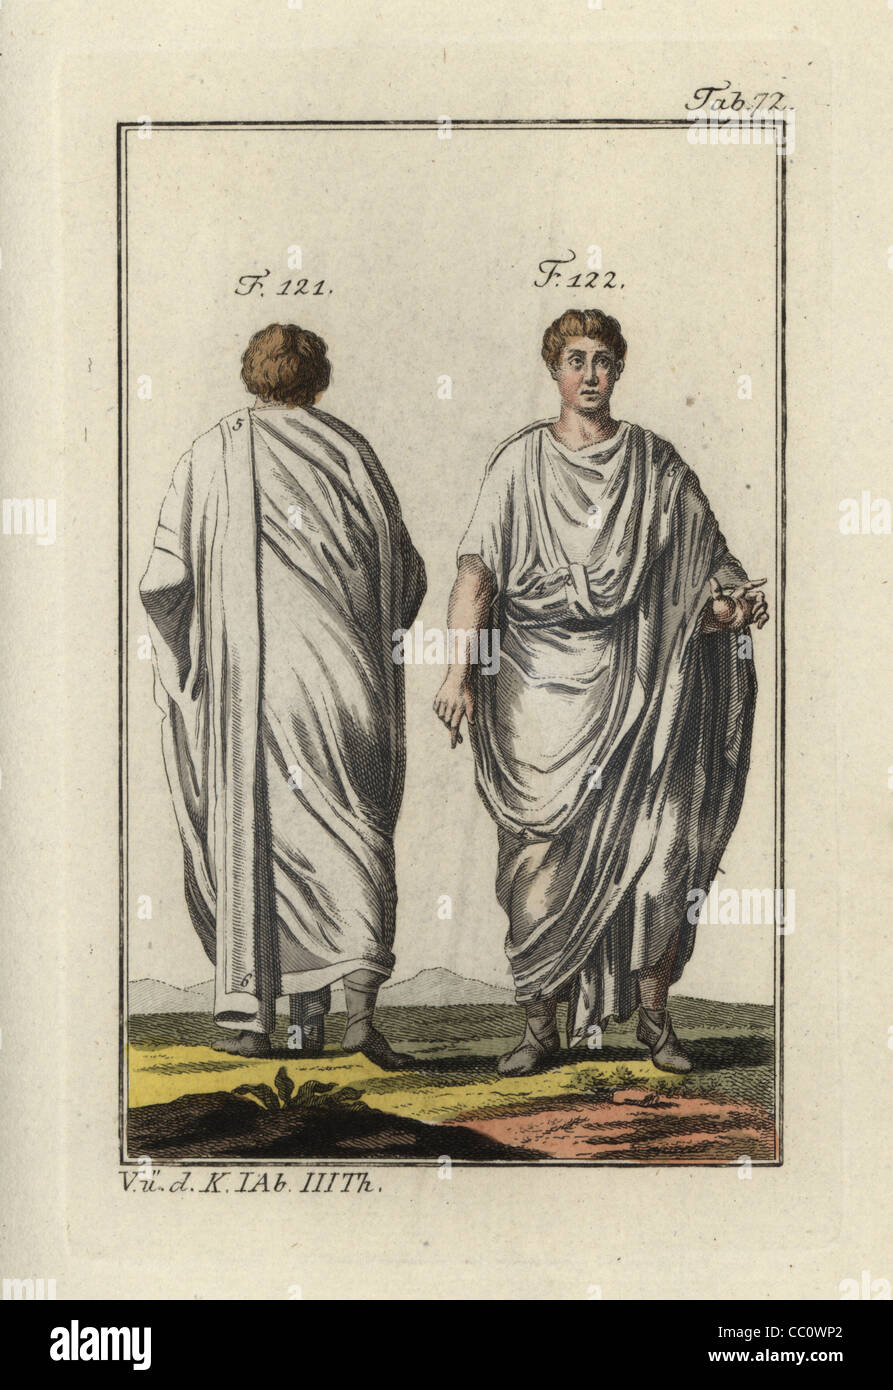 ancient roman toga stockfotos amp ancient roman toga bilder